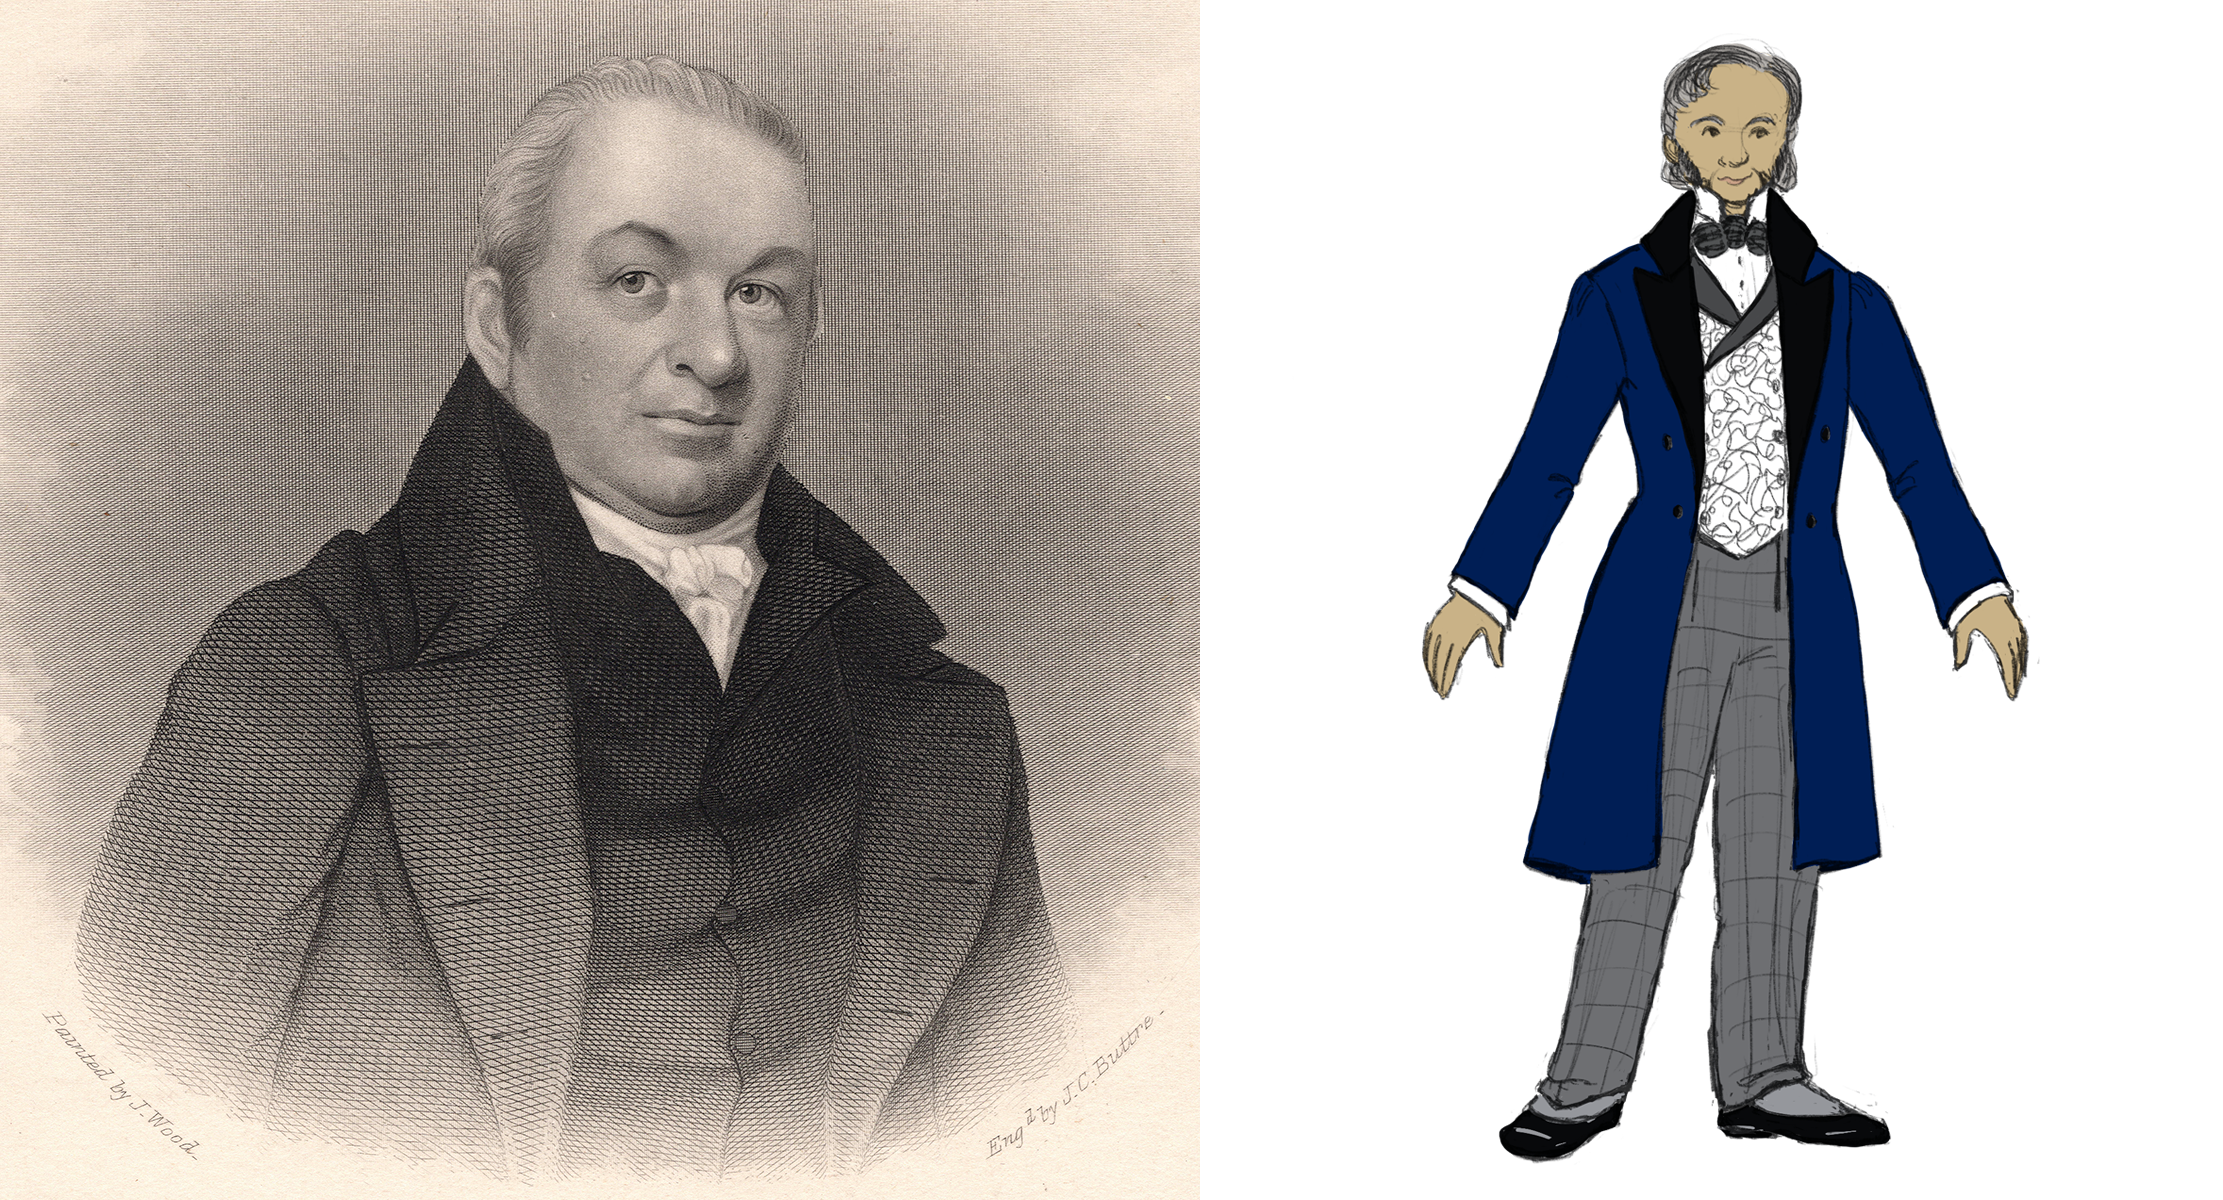 Left, Artist engraving of Azel Backus from 1813. Right, Costume Design Sketch of Azel Backus